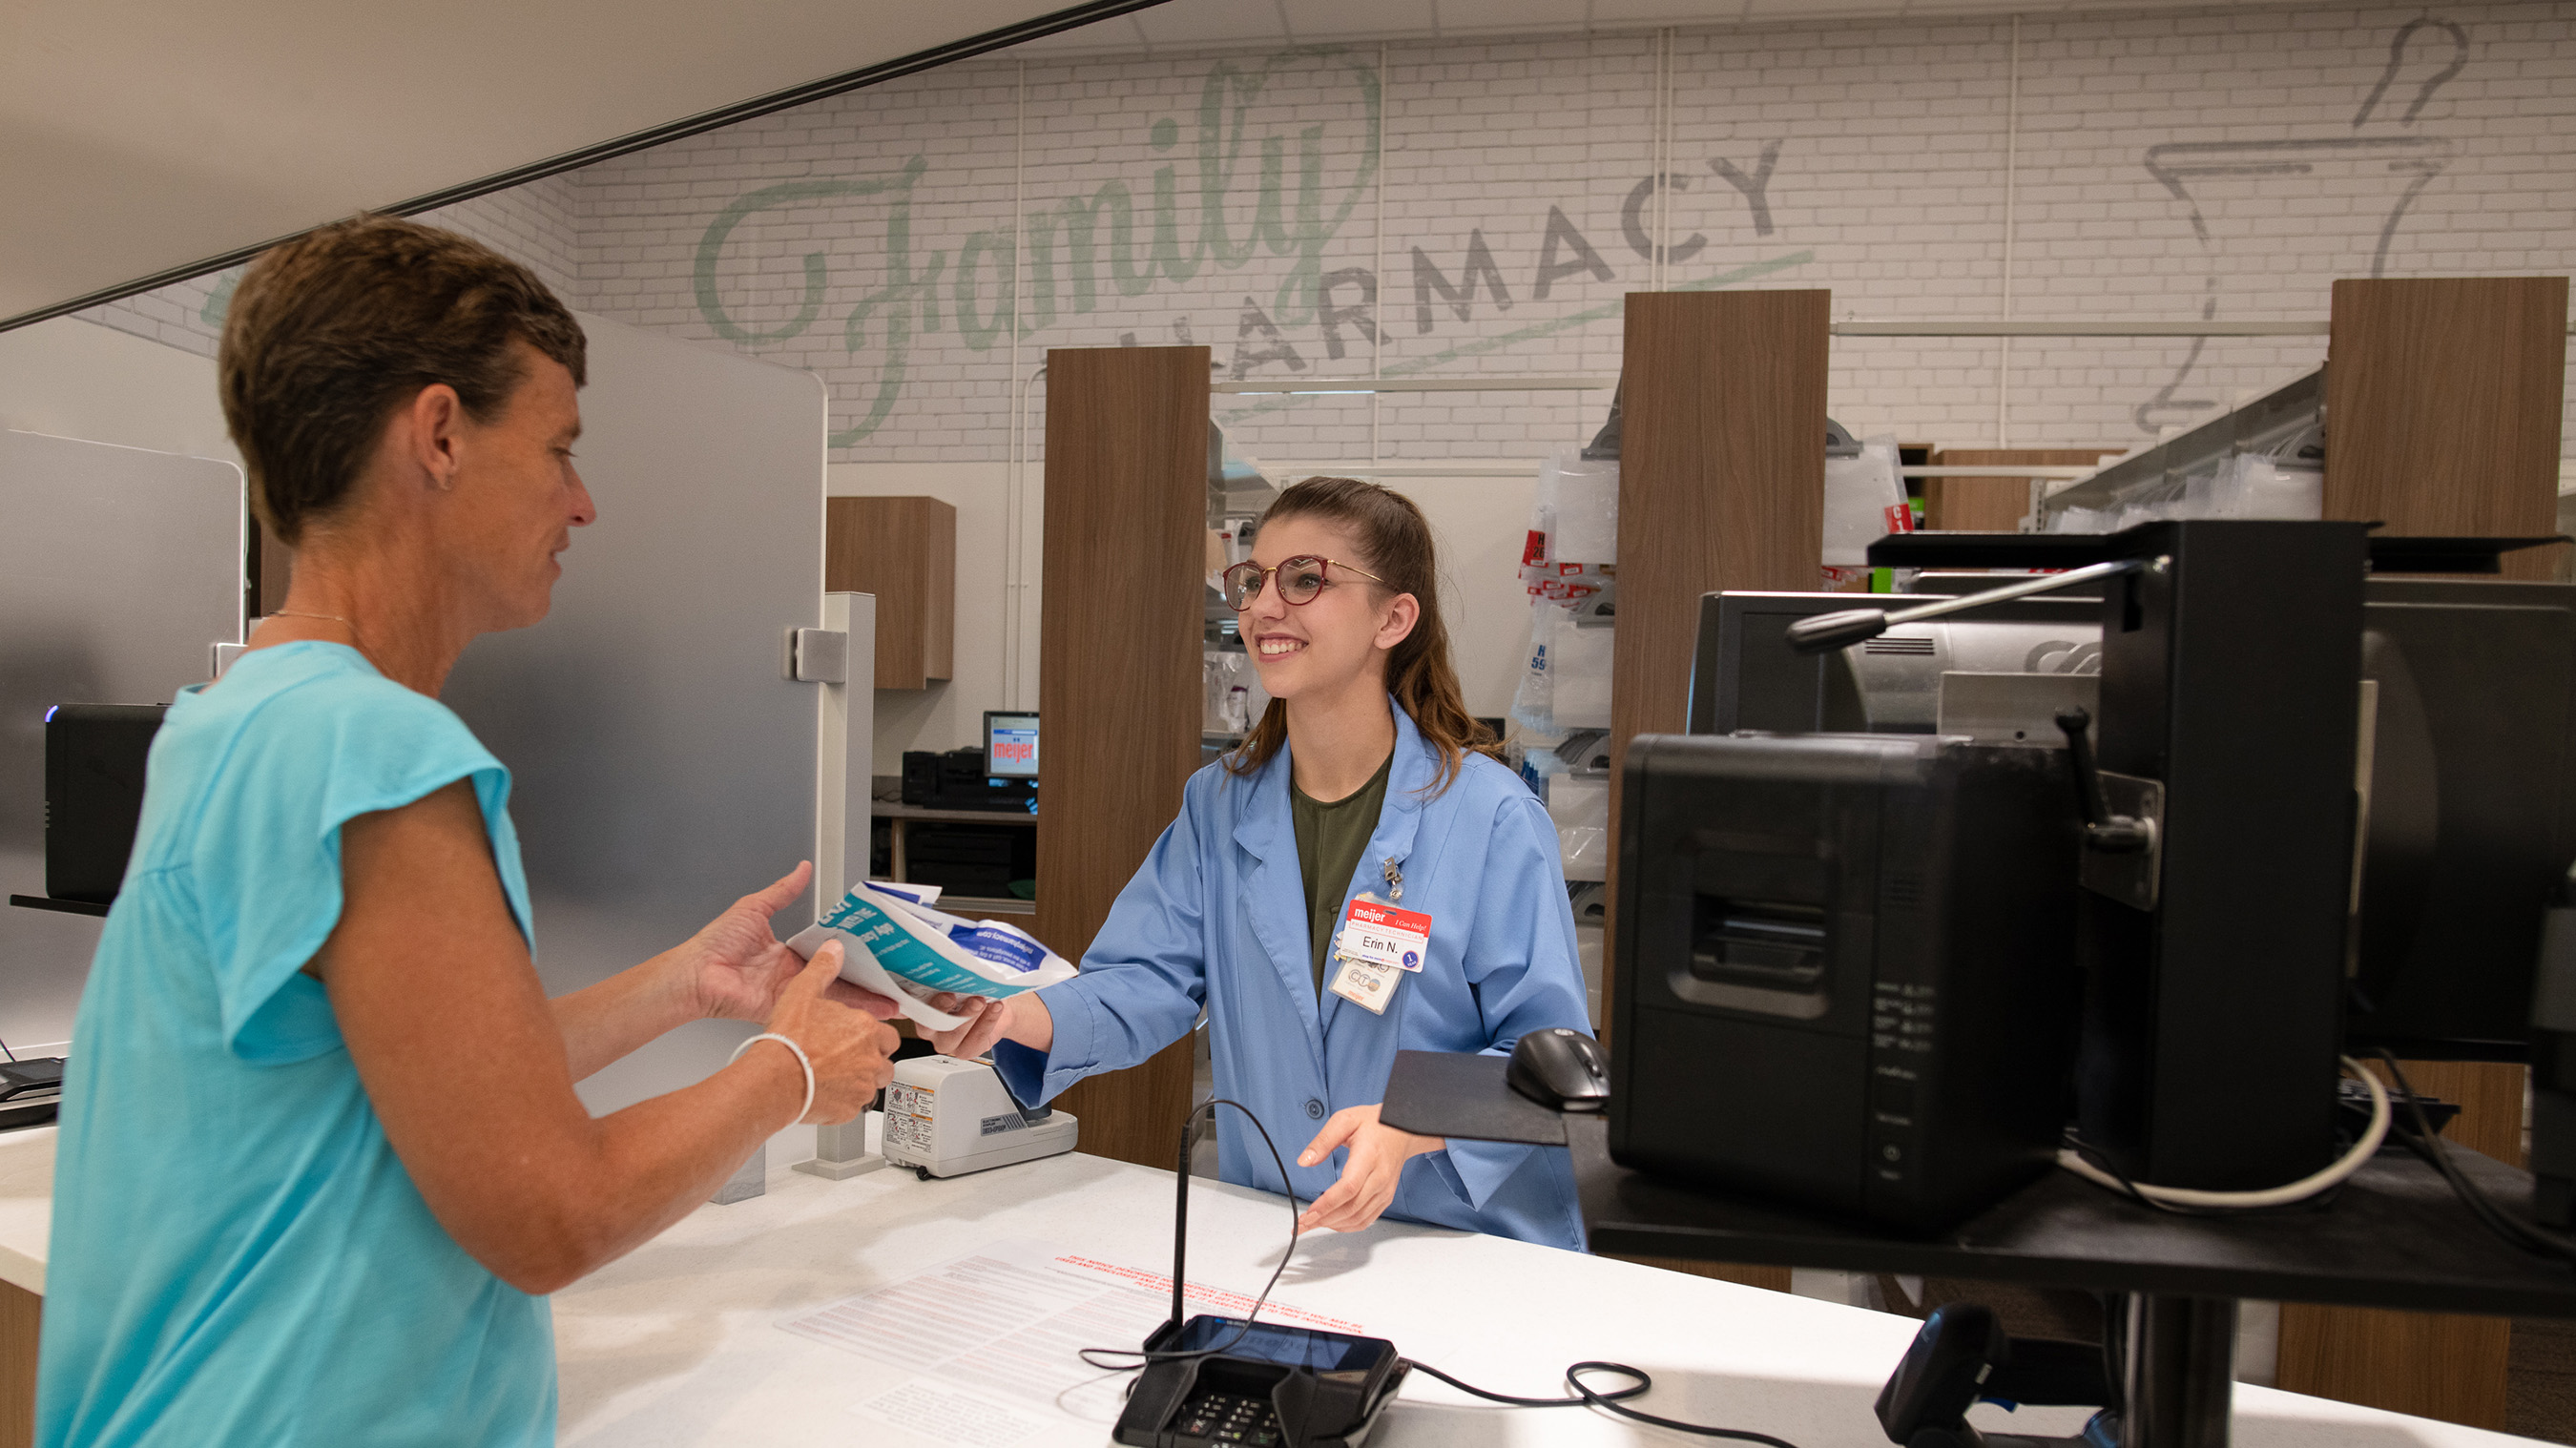 Meijer pharmacies marked a major milestone this week in helping customers lower their healthcare costs. The Midwestern retailer's Free Prescription Drug program reached 50 million prescriptions filled since its launch in 2006, saving customers more than $650 million.